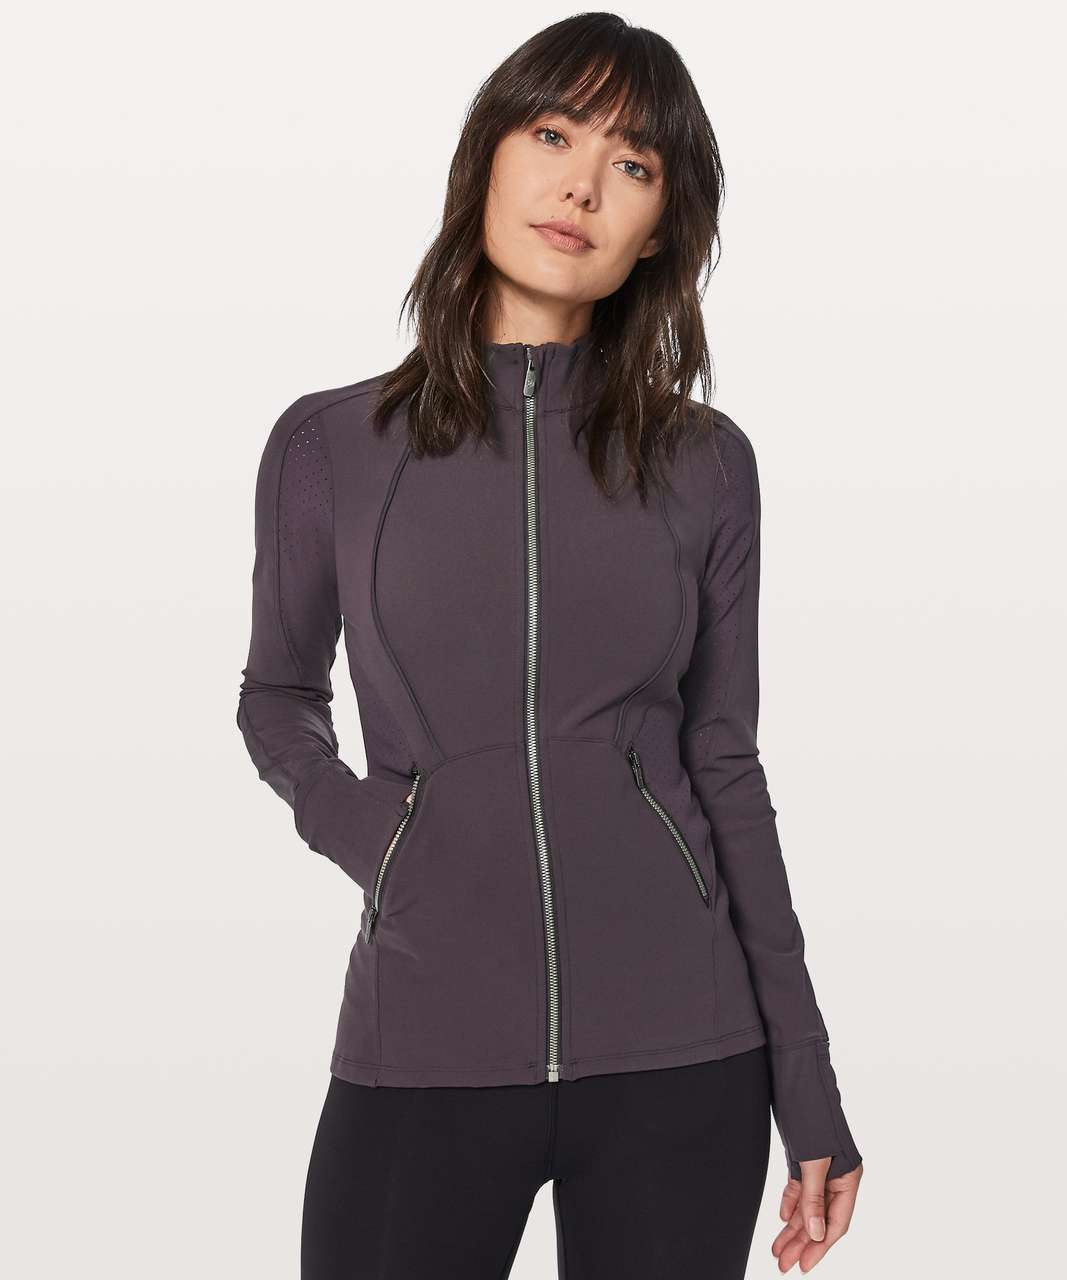 Lululemon Sleek Essentials Jacket - Boysenberry